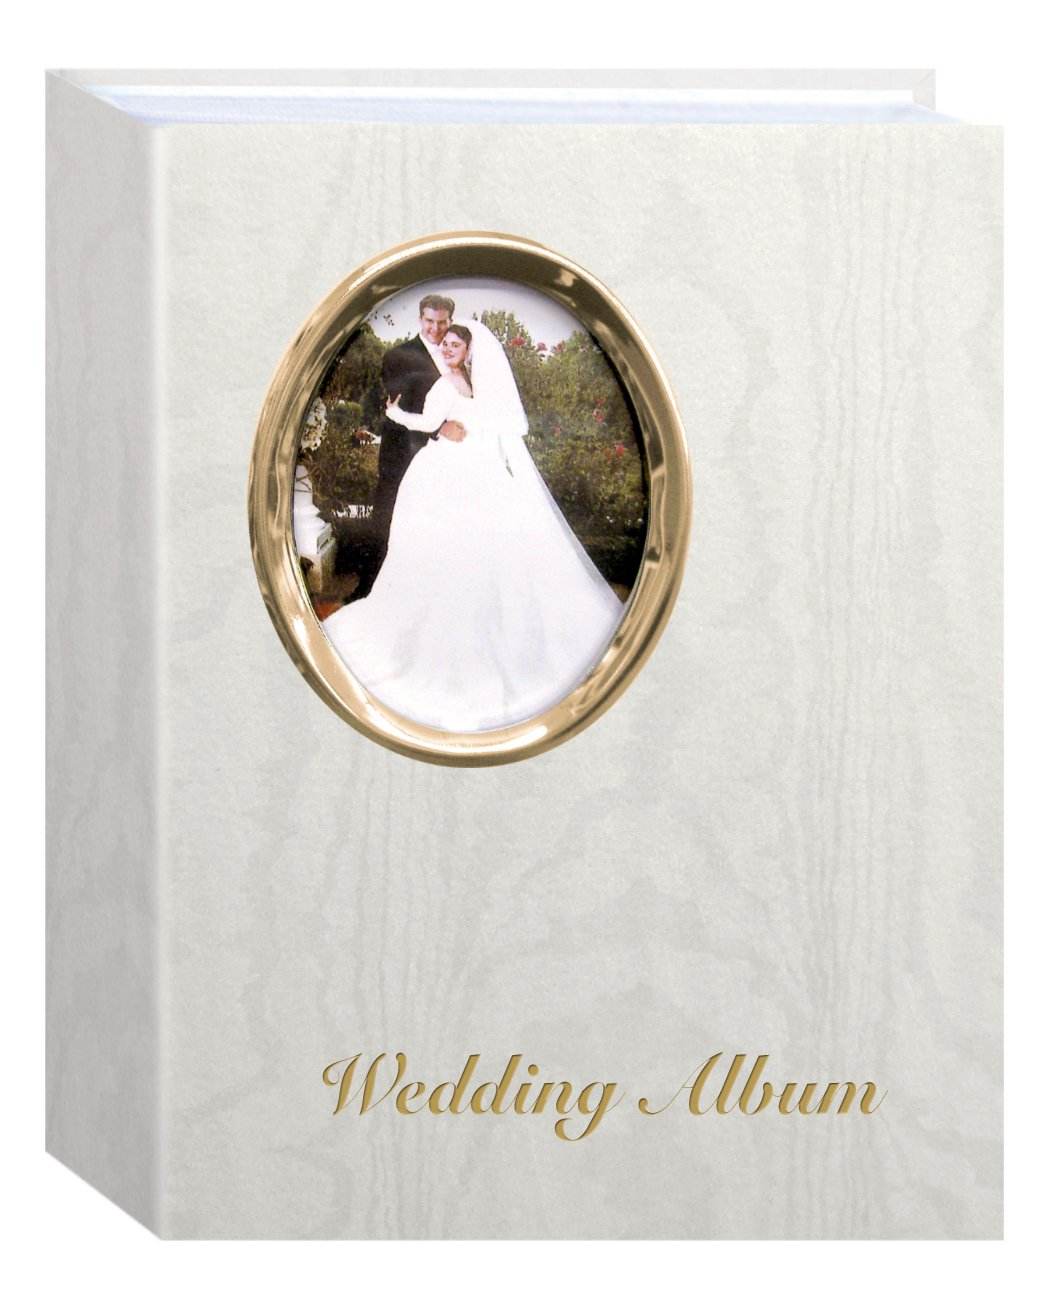 Pioneer Photo Albums WAF-46/GT 200 Pocket Ivory Moire Cover Album with Gold Tone Oval Frame and Wedding Album Text for 4 x 6-Inch Prints